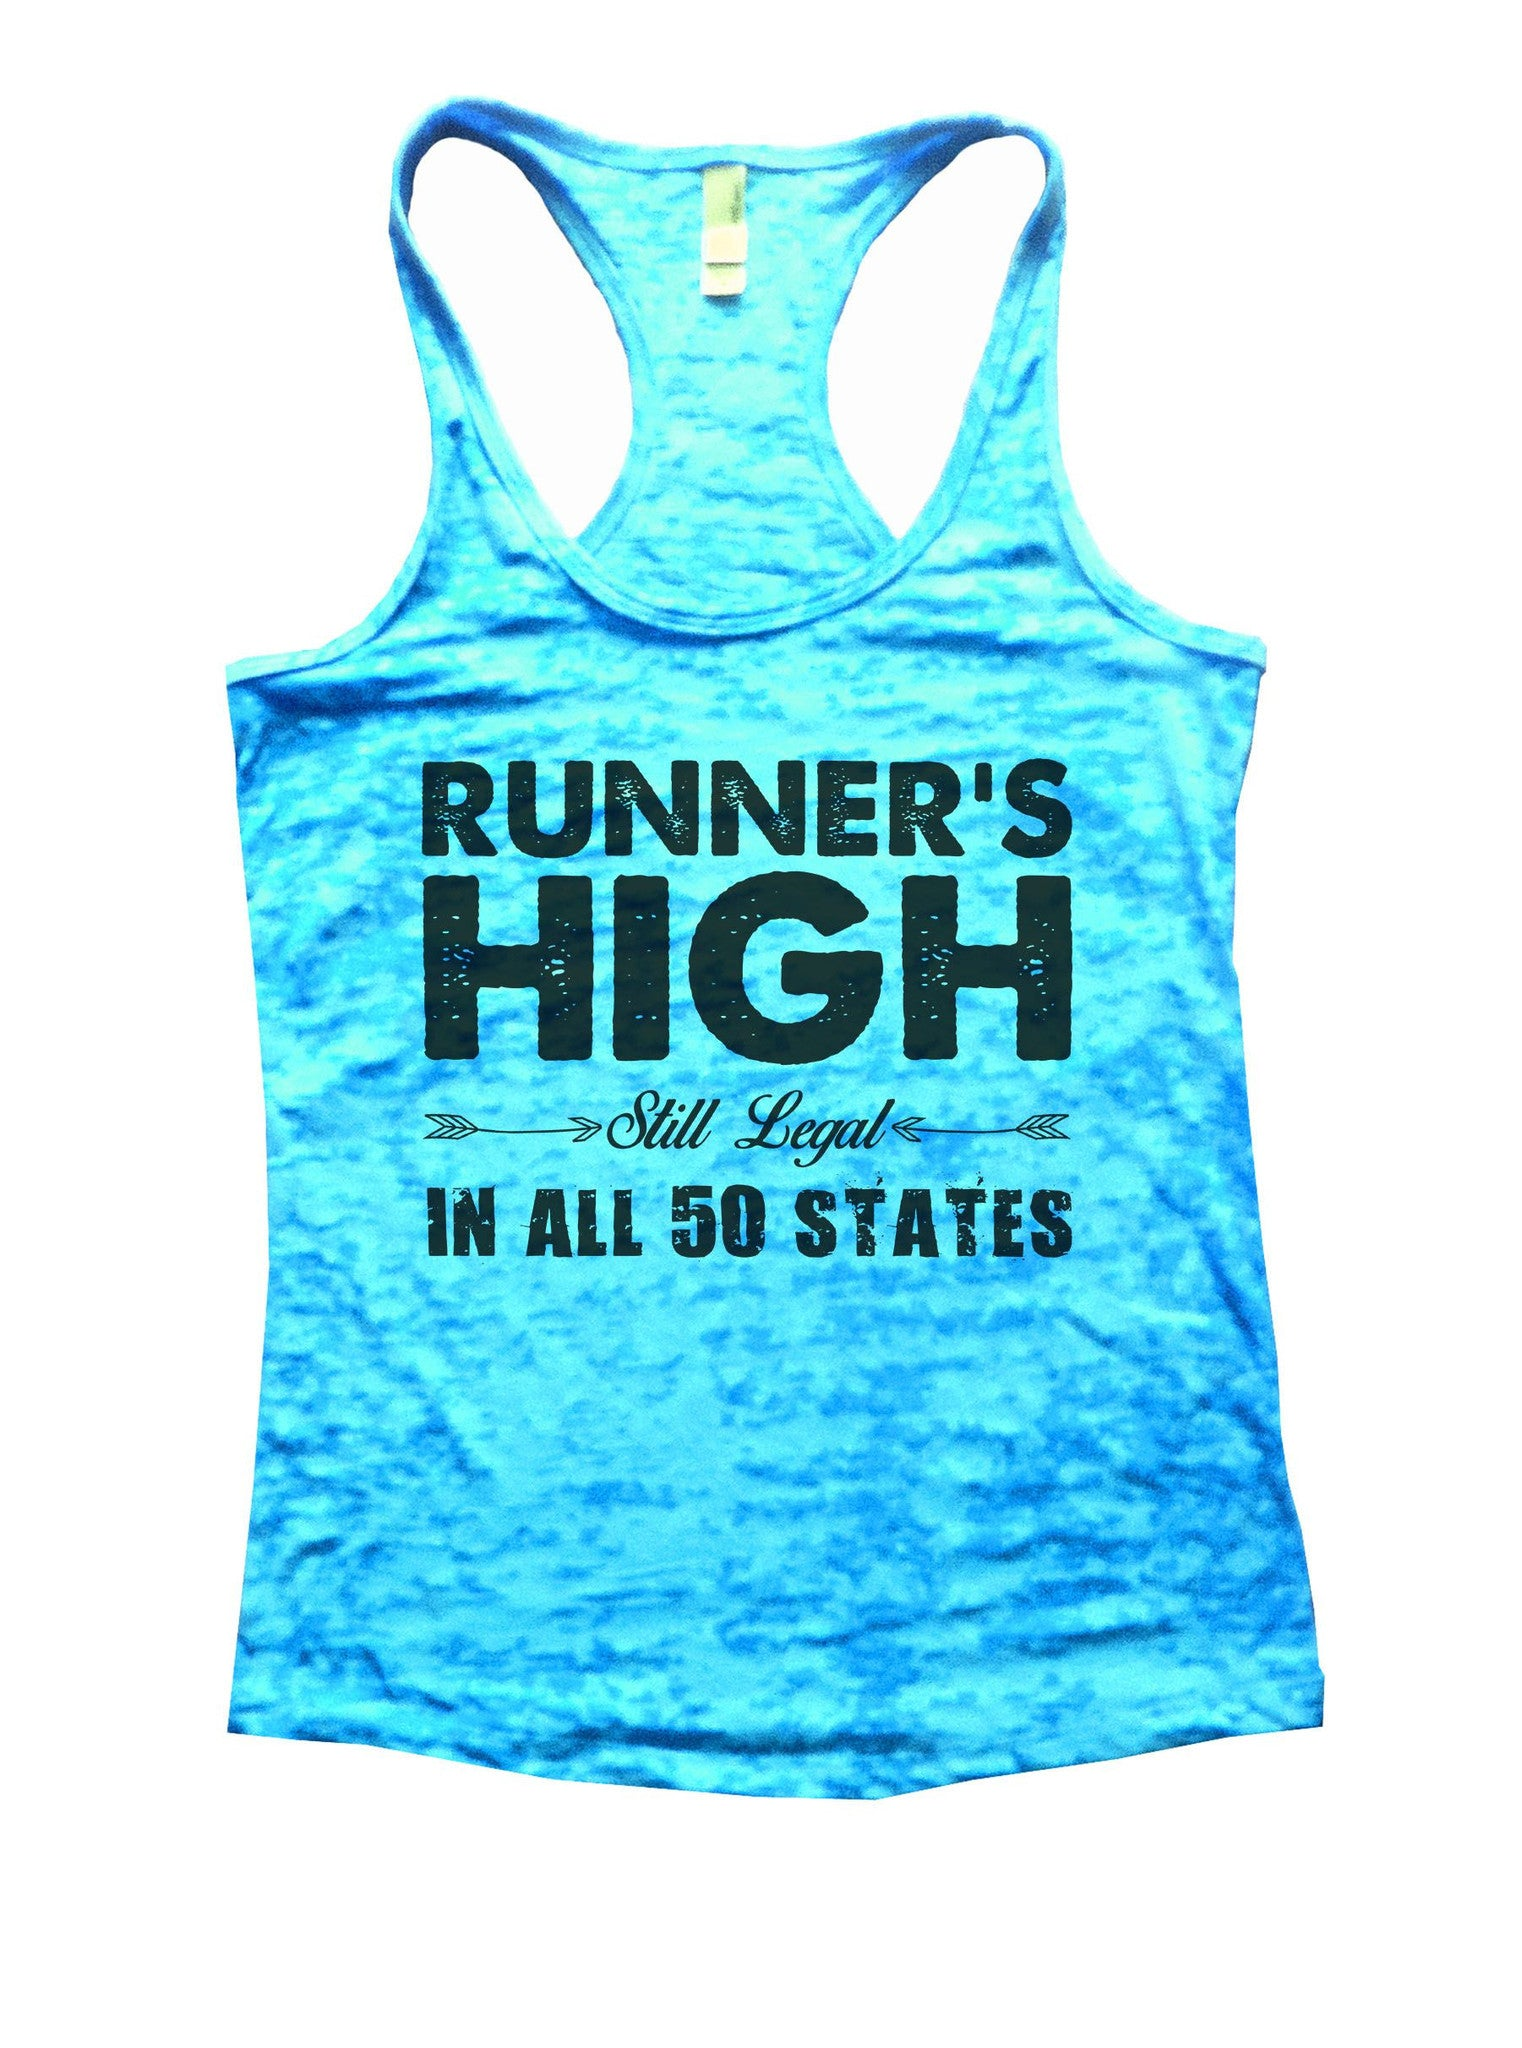 Runner's High Still Legal In All 50 States Burnout Tank Top By BurnoutTankTops.com - 902 - Funny Shirts Tank Tops Burnouts and Triblends  - 4